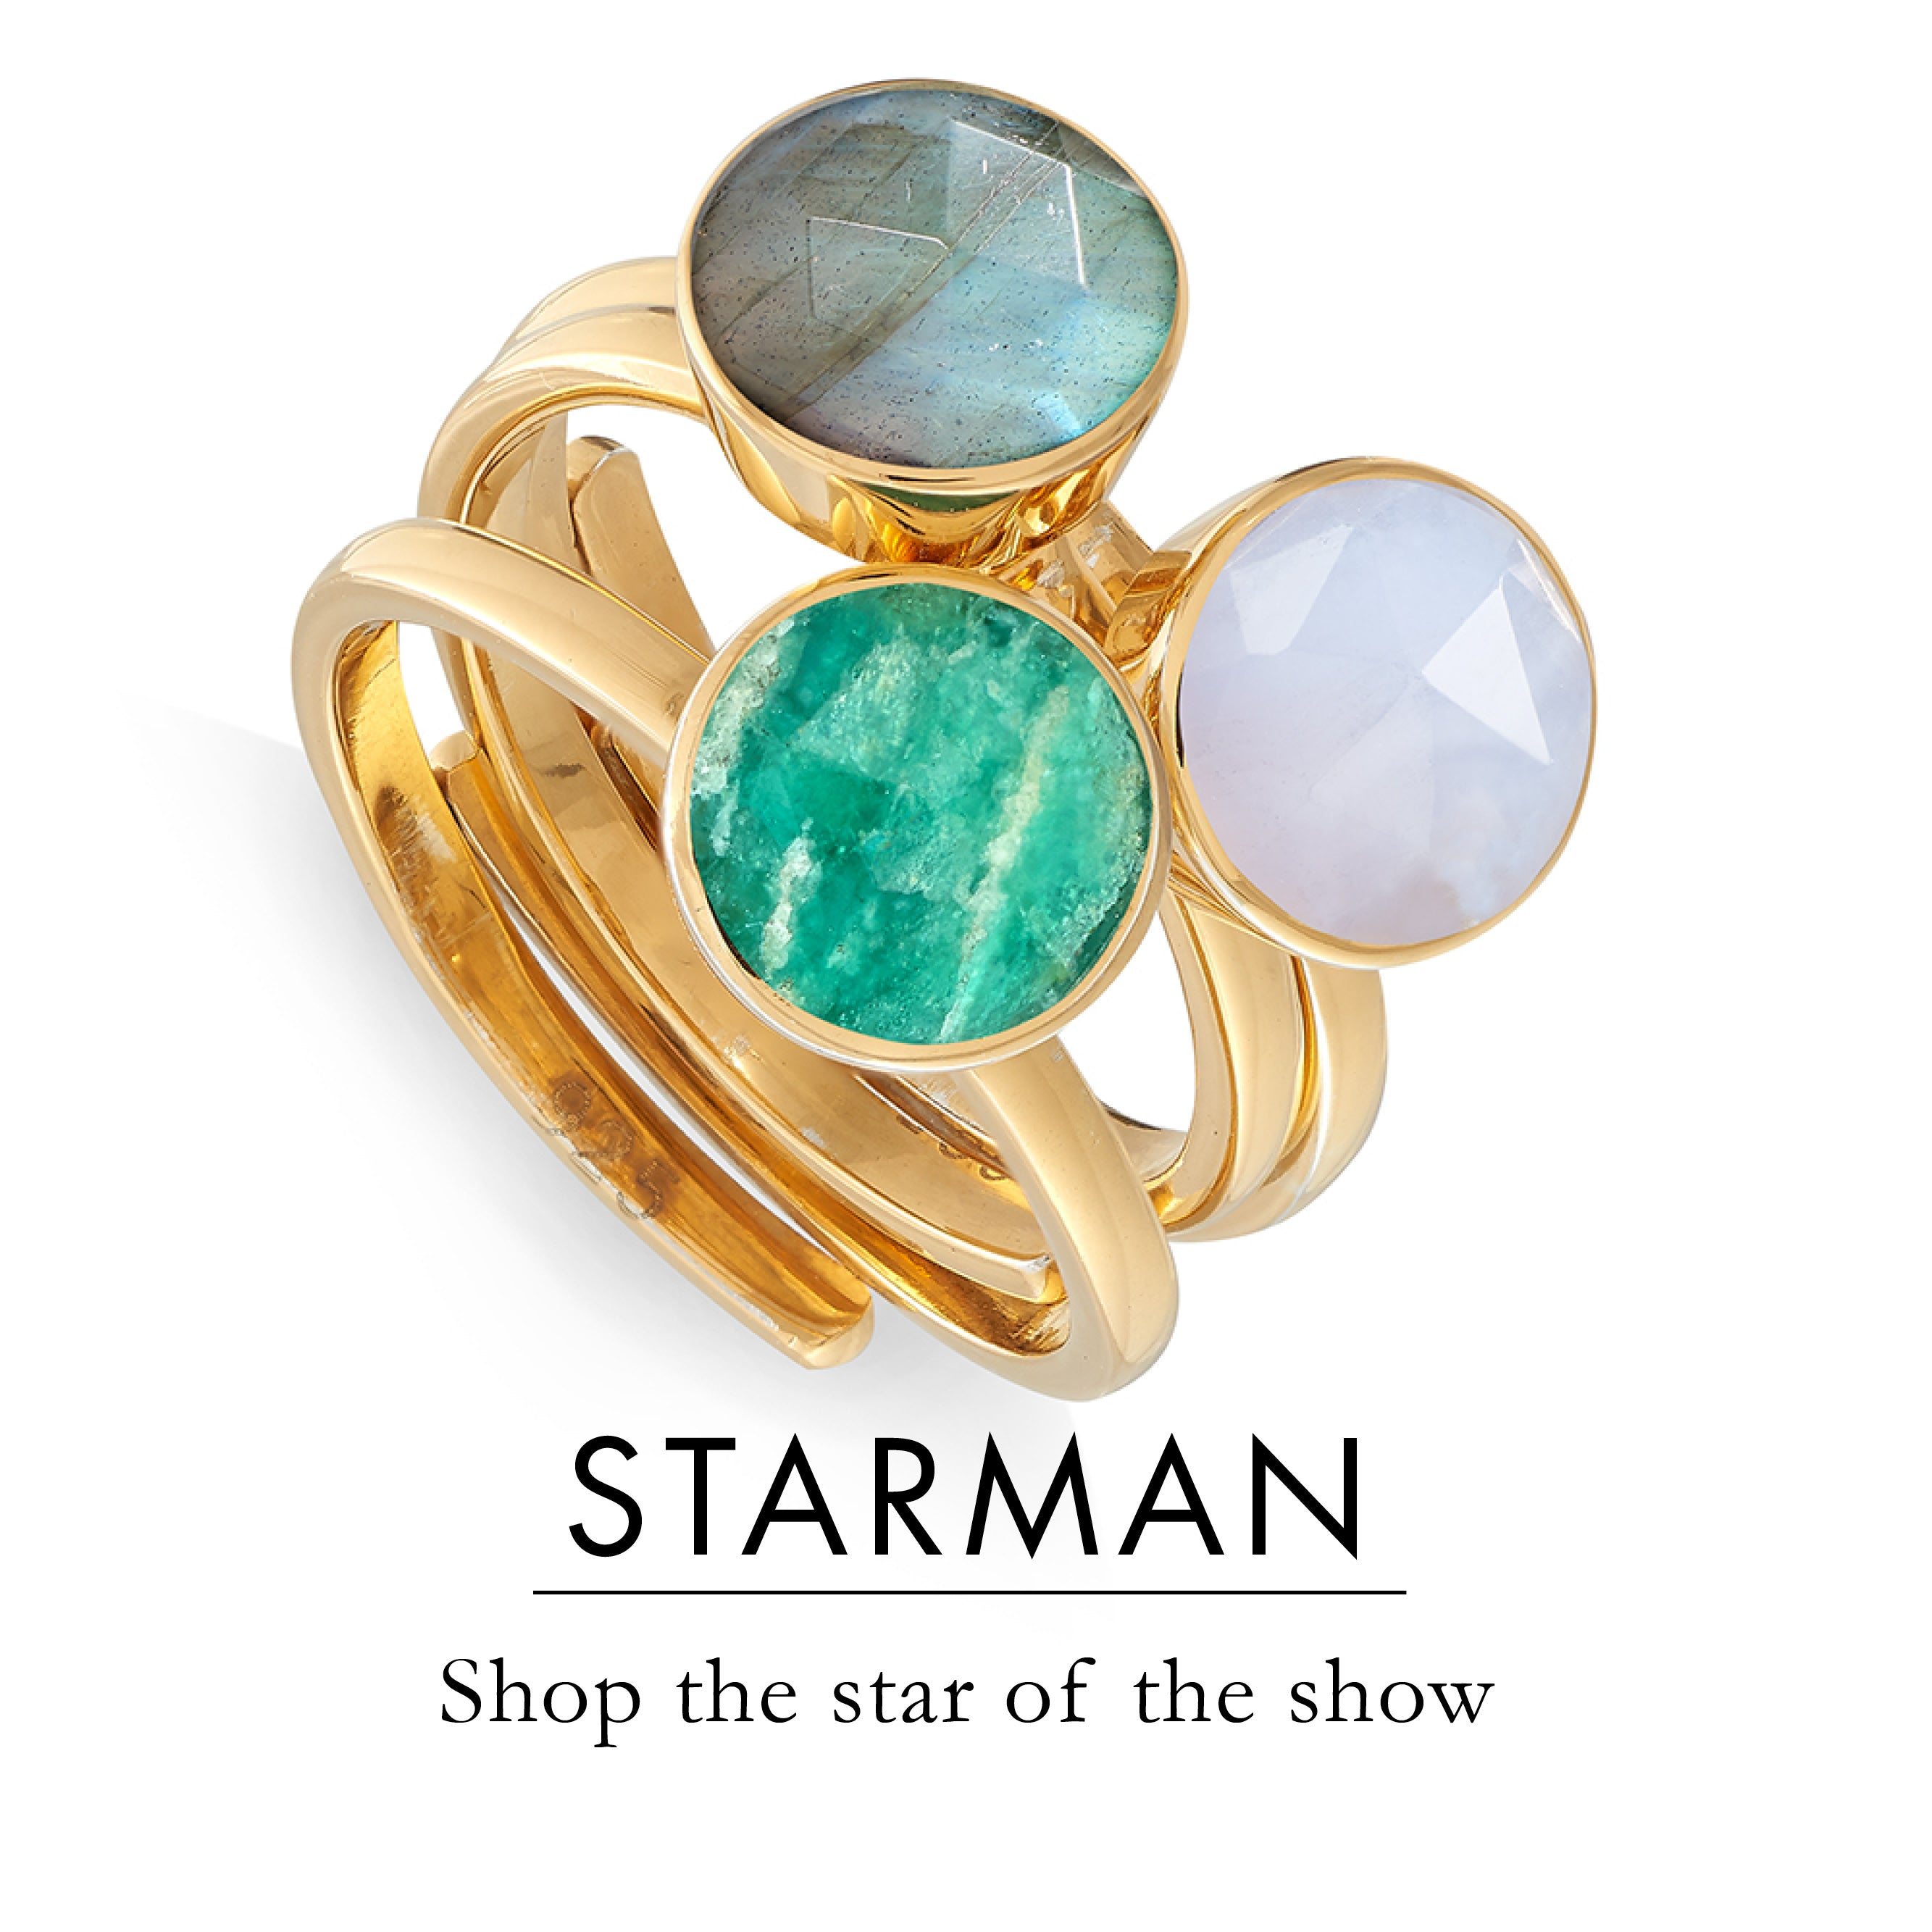 Starman_Shop_The_Star_Of_The_Show